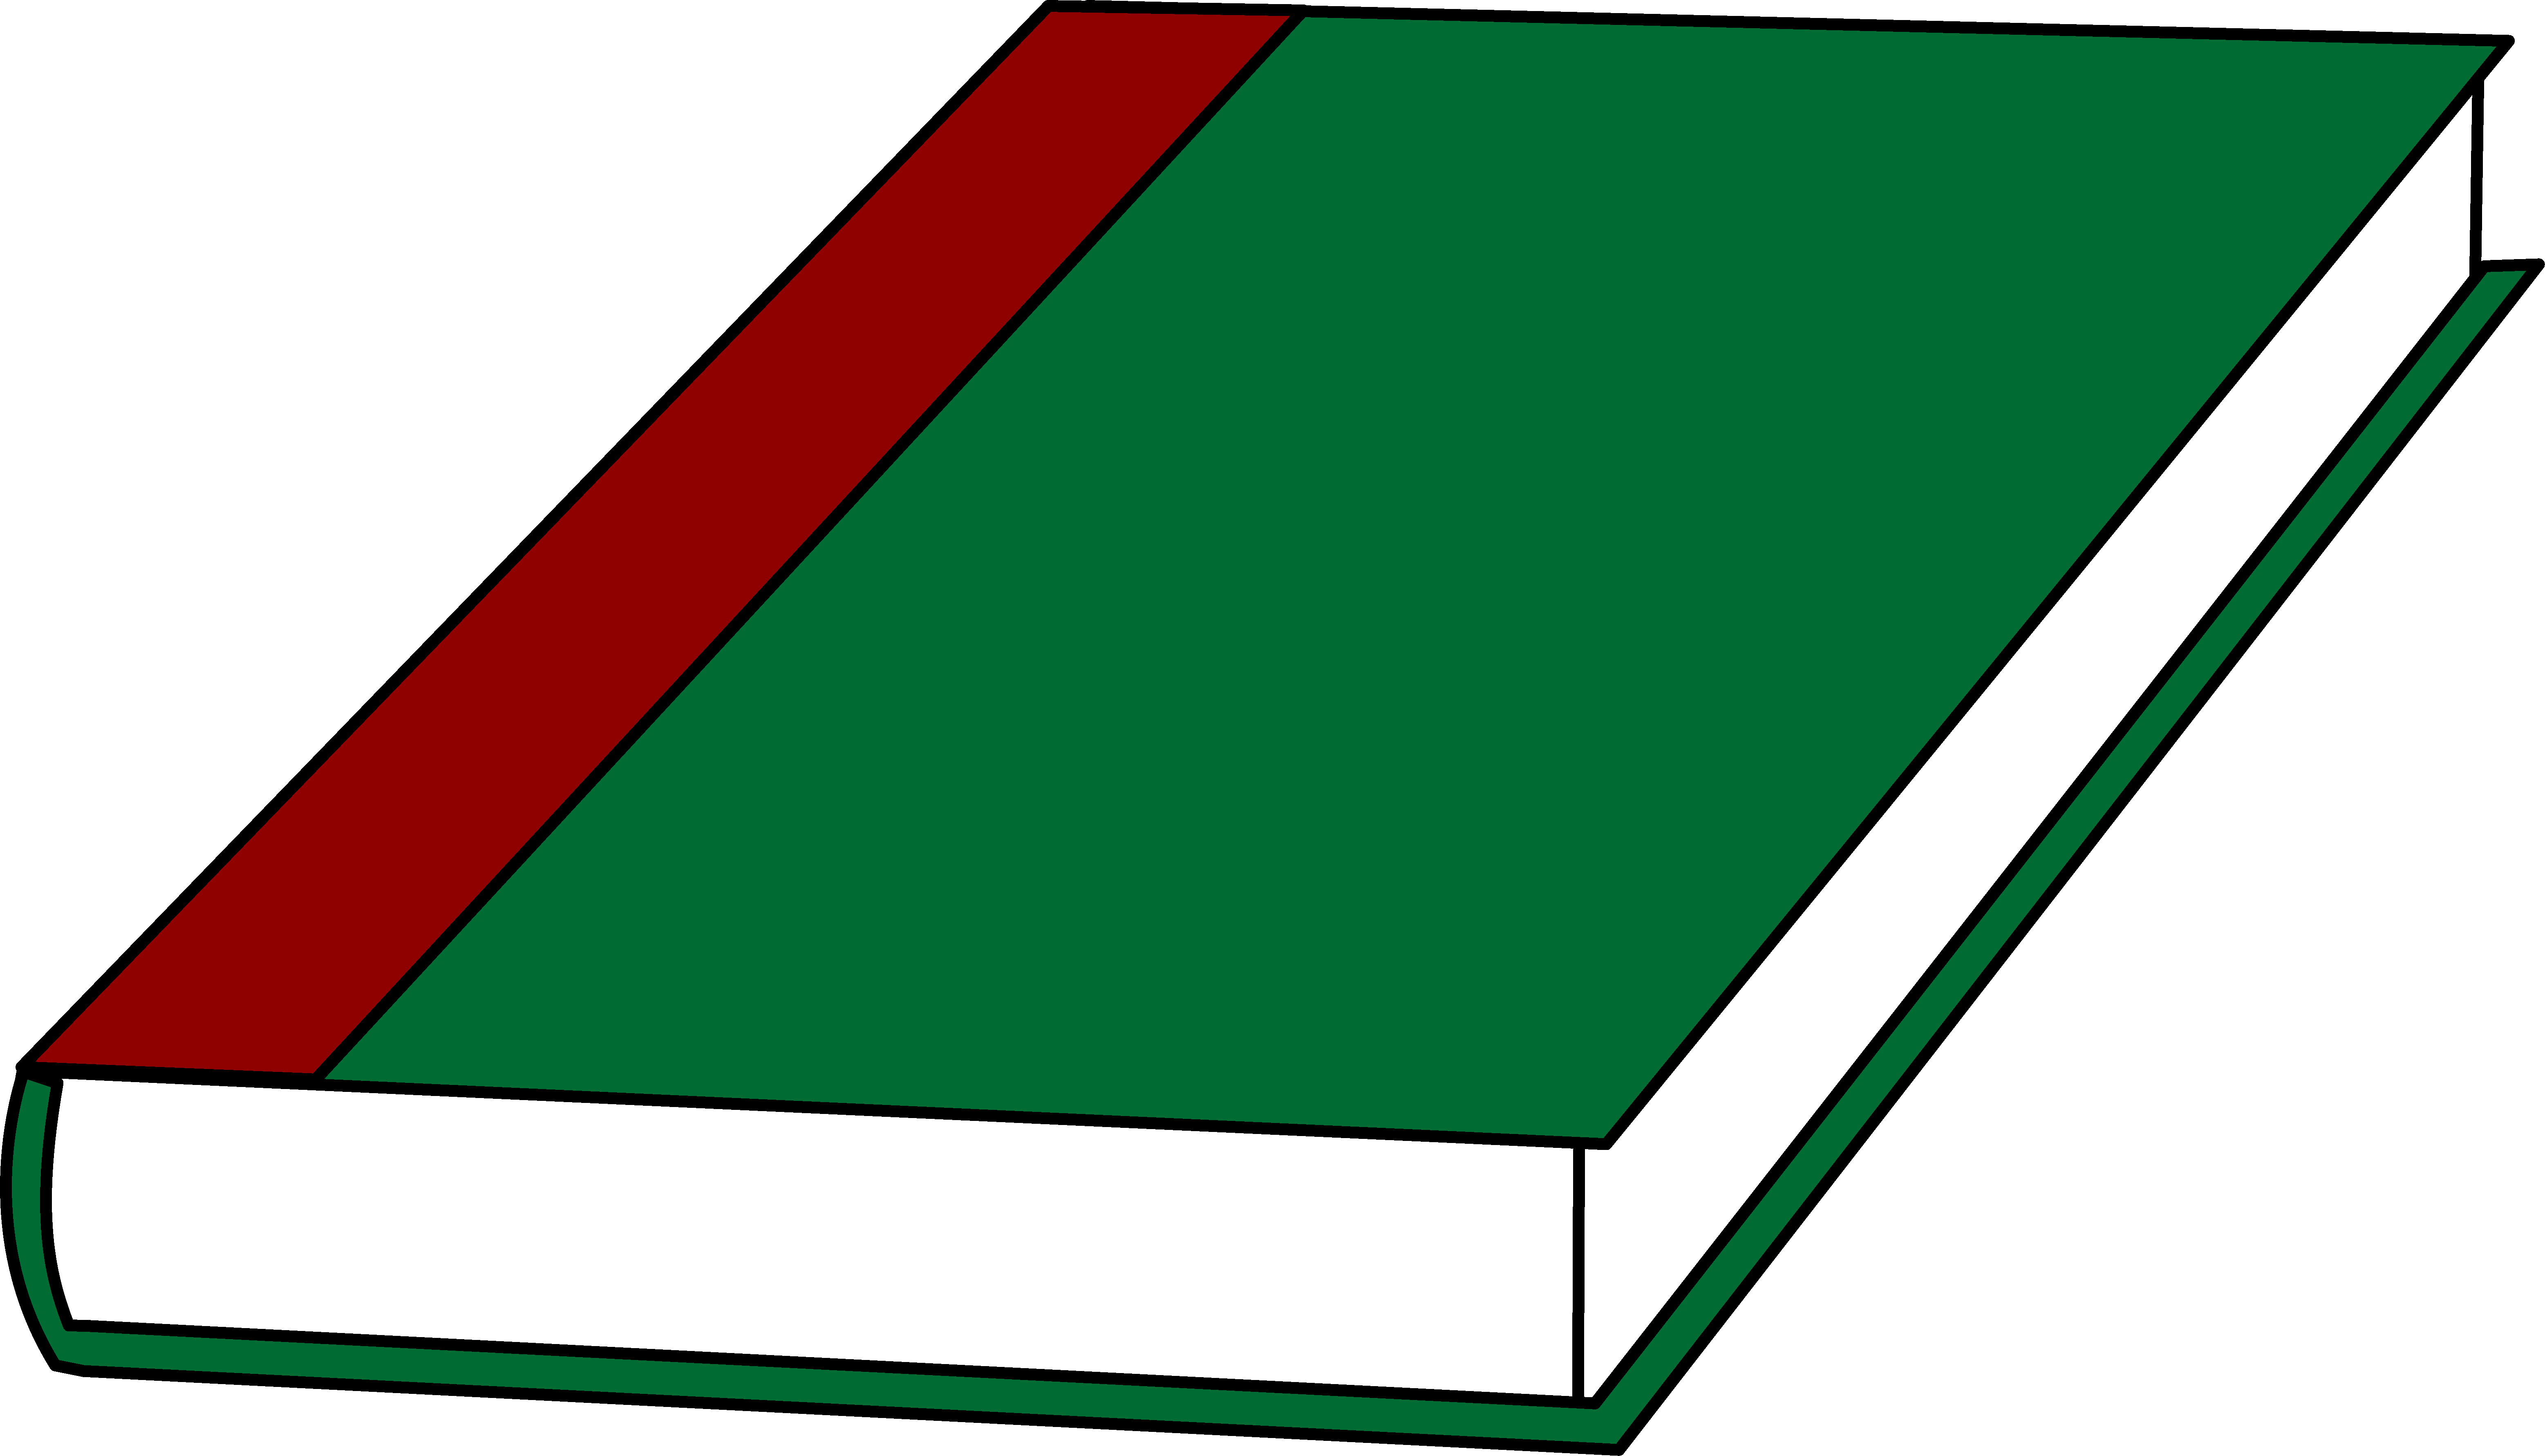 A Book With a Green Cover - Free Clip Art